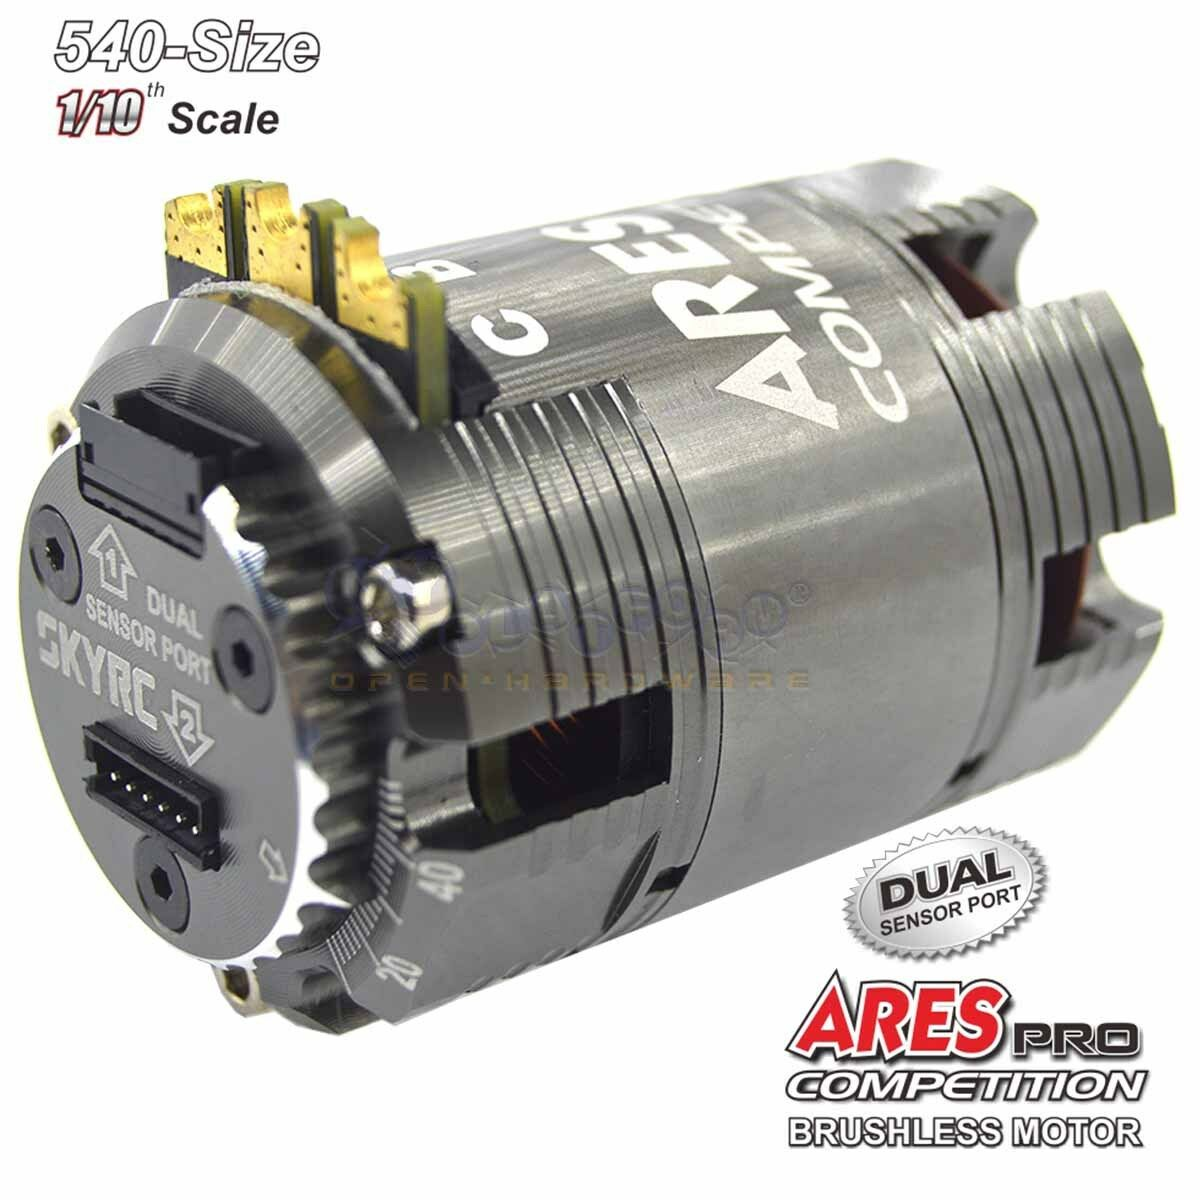 SkyRC Ares Pro Competition 540 Brushless, Sensored Mod Motor 4.5T 7620KV